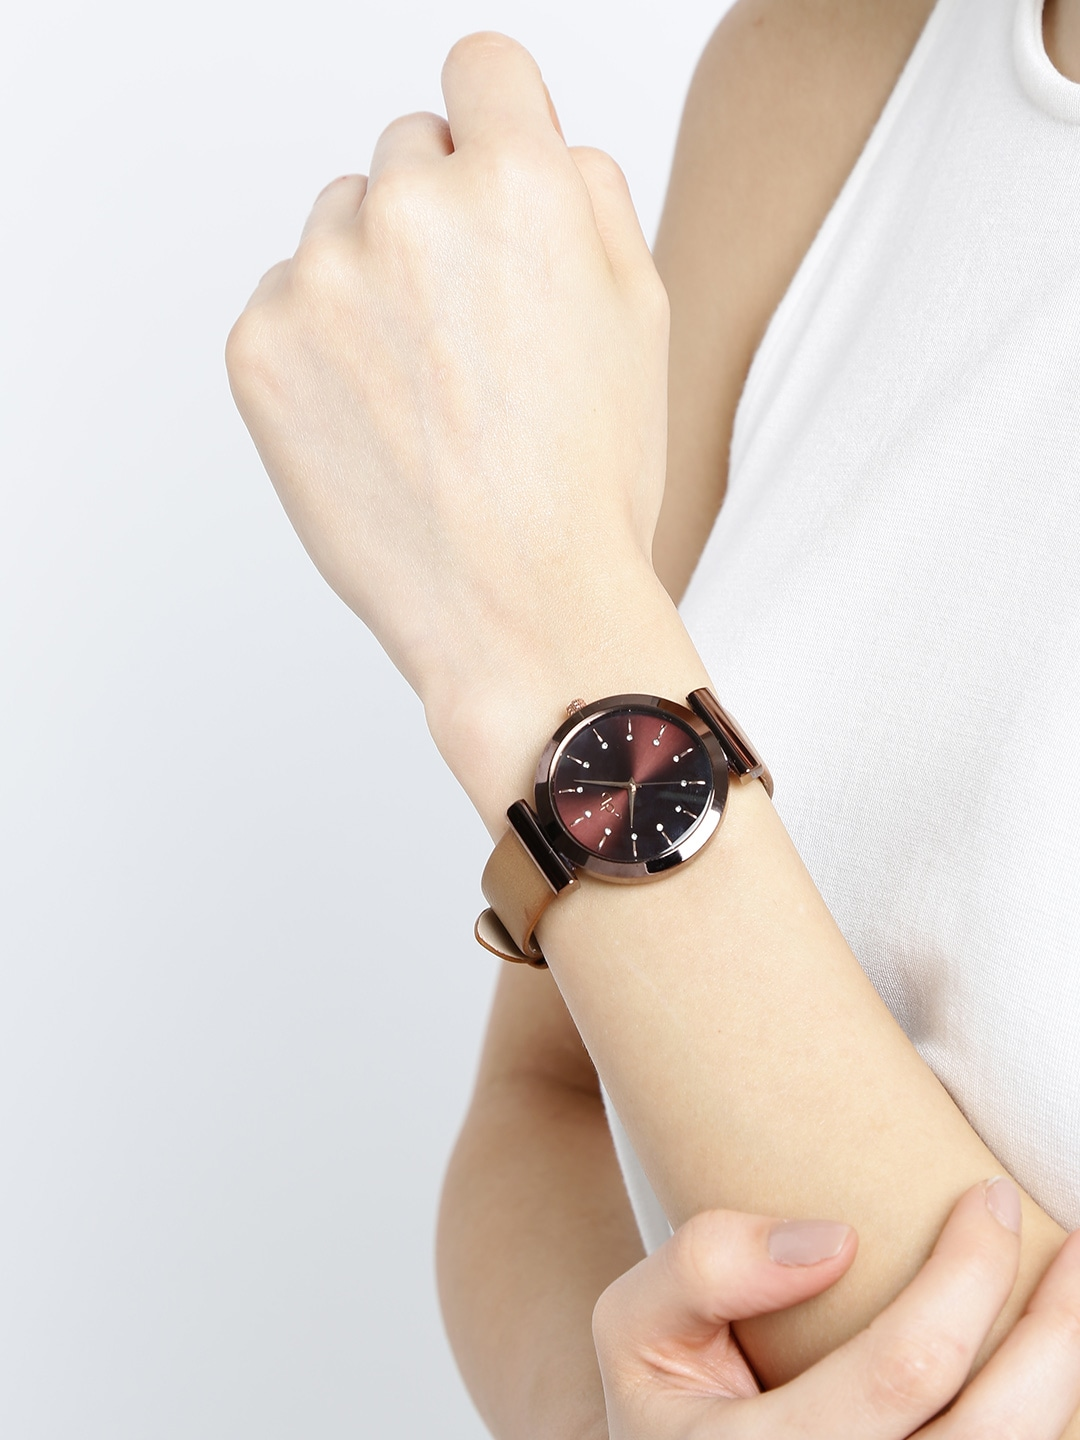 tag hair wrist watch watches buy tag hair wrist watch watches